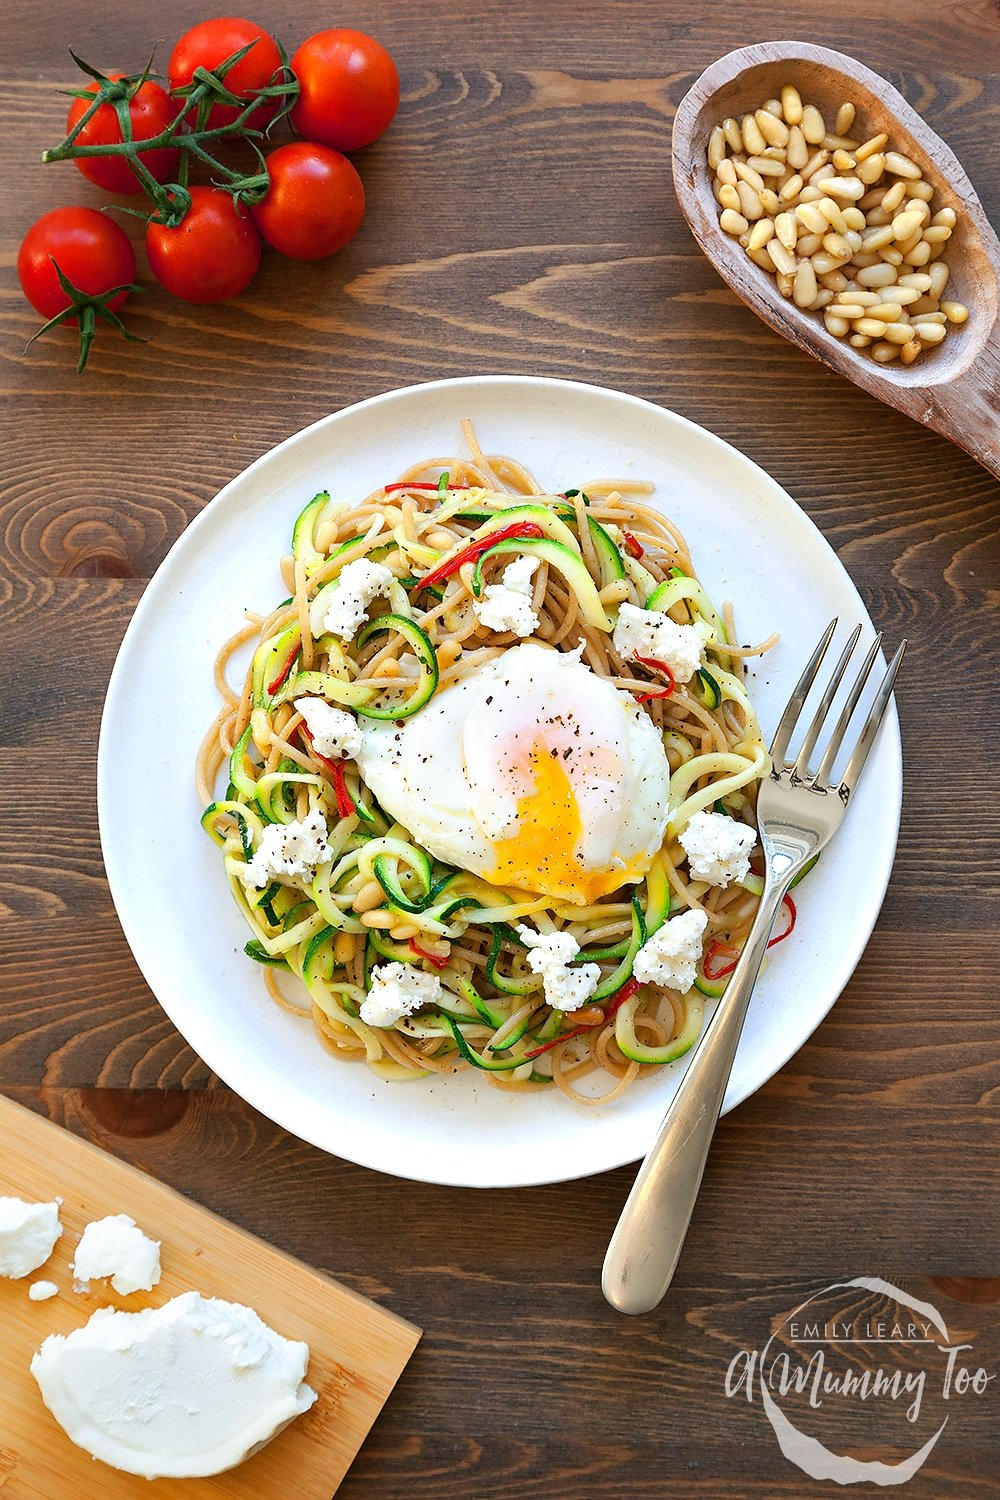 Courgette and whole wheat pasta with poached egg - a delicious meal with added flavour, thanks to the poached egg